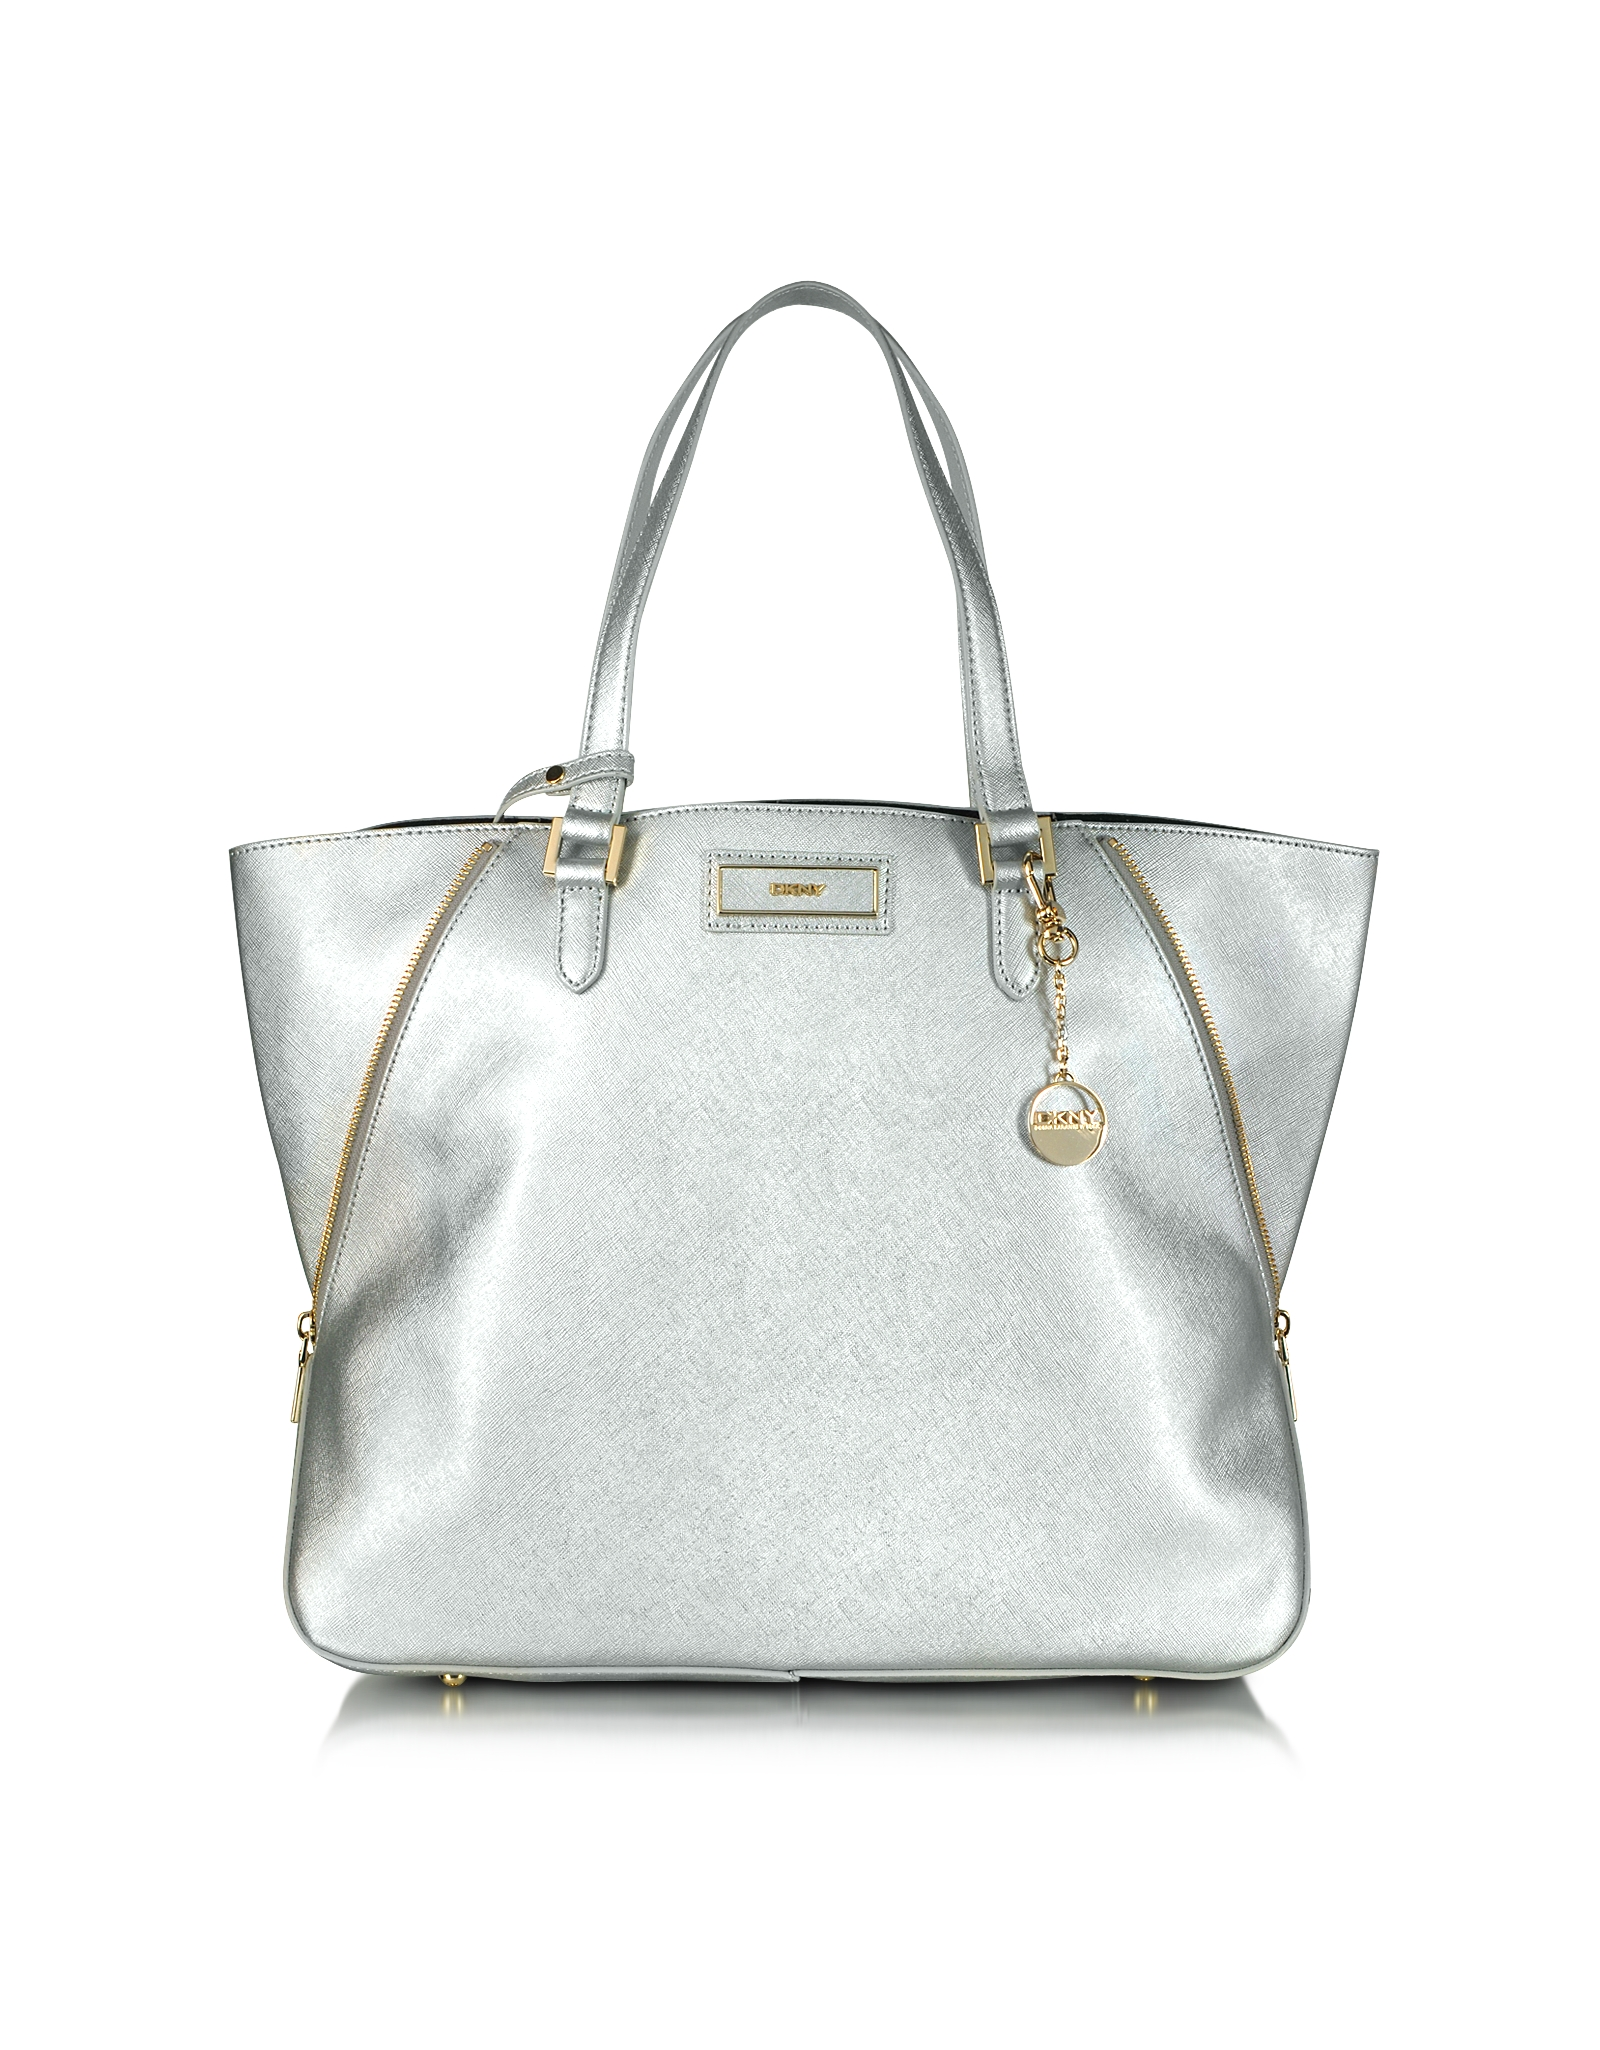 9a98d57a9fb7 Lyst - DKNY Large Saffiano Leather Zip Tote in Metallic